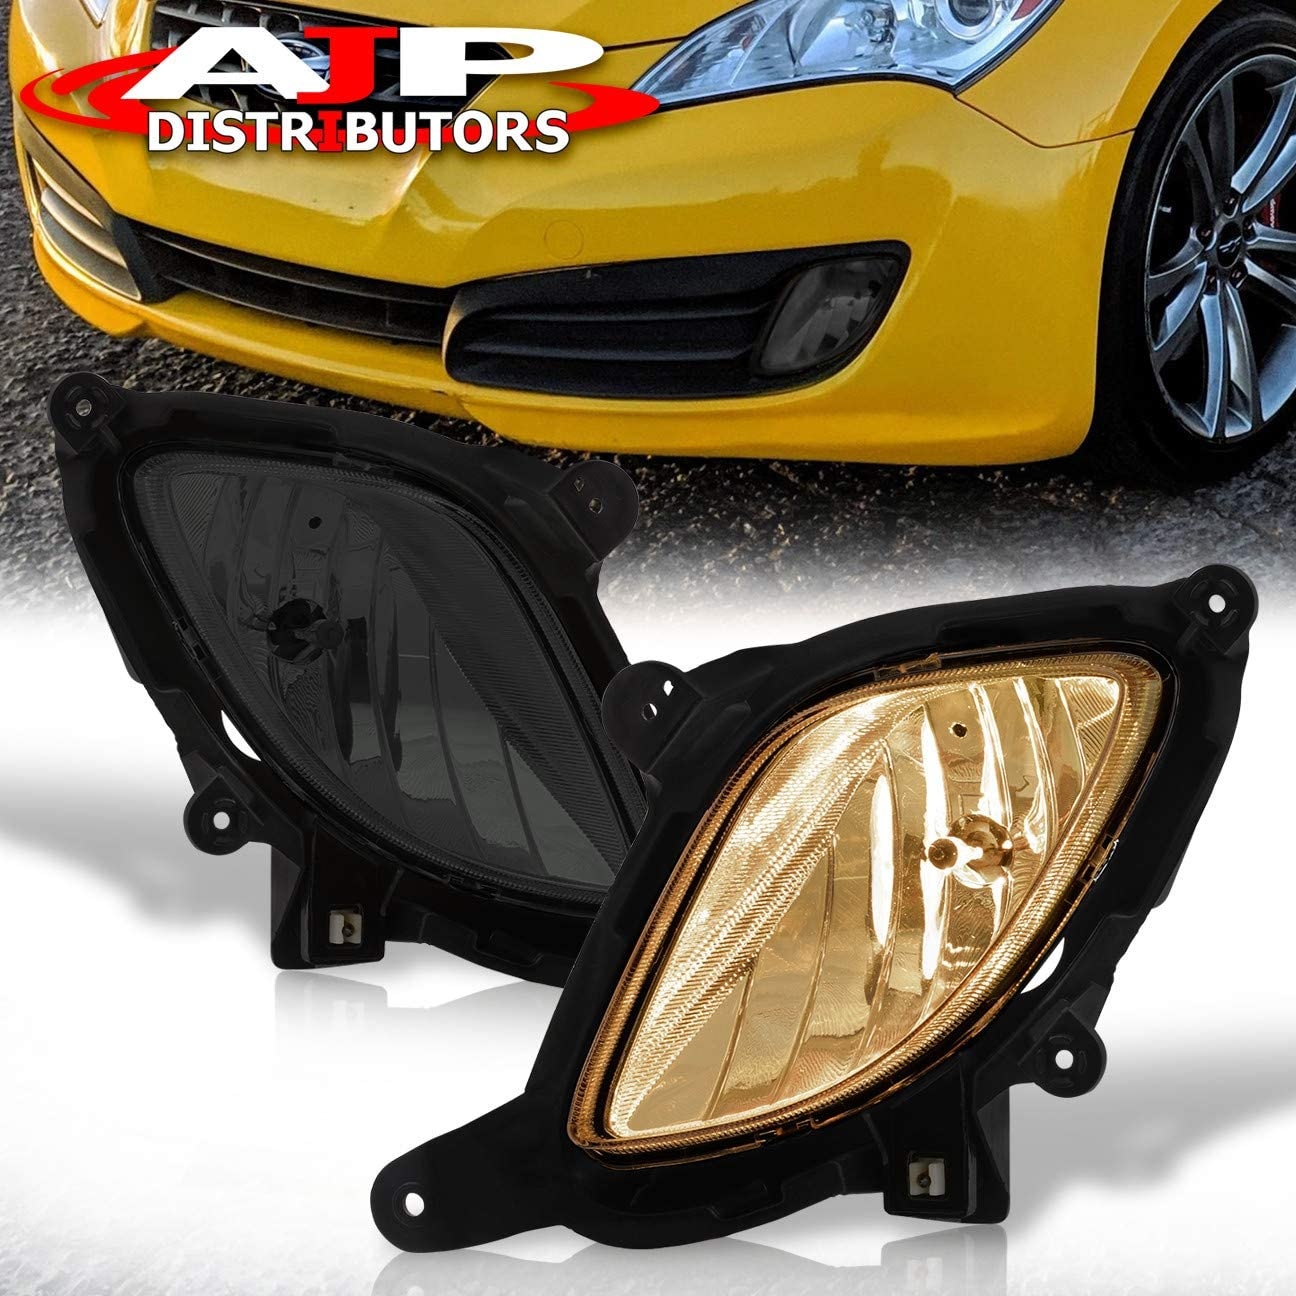 Amazon.com: AJP Distributors For Hyundai Genesis Coupe Front Driving Fog  Light Lamp Smoke Smoked Lens Switch Harness Wiring Unit Pair Kit Set:  AutomotiveAmazon.com